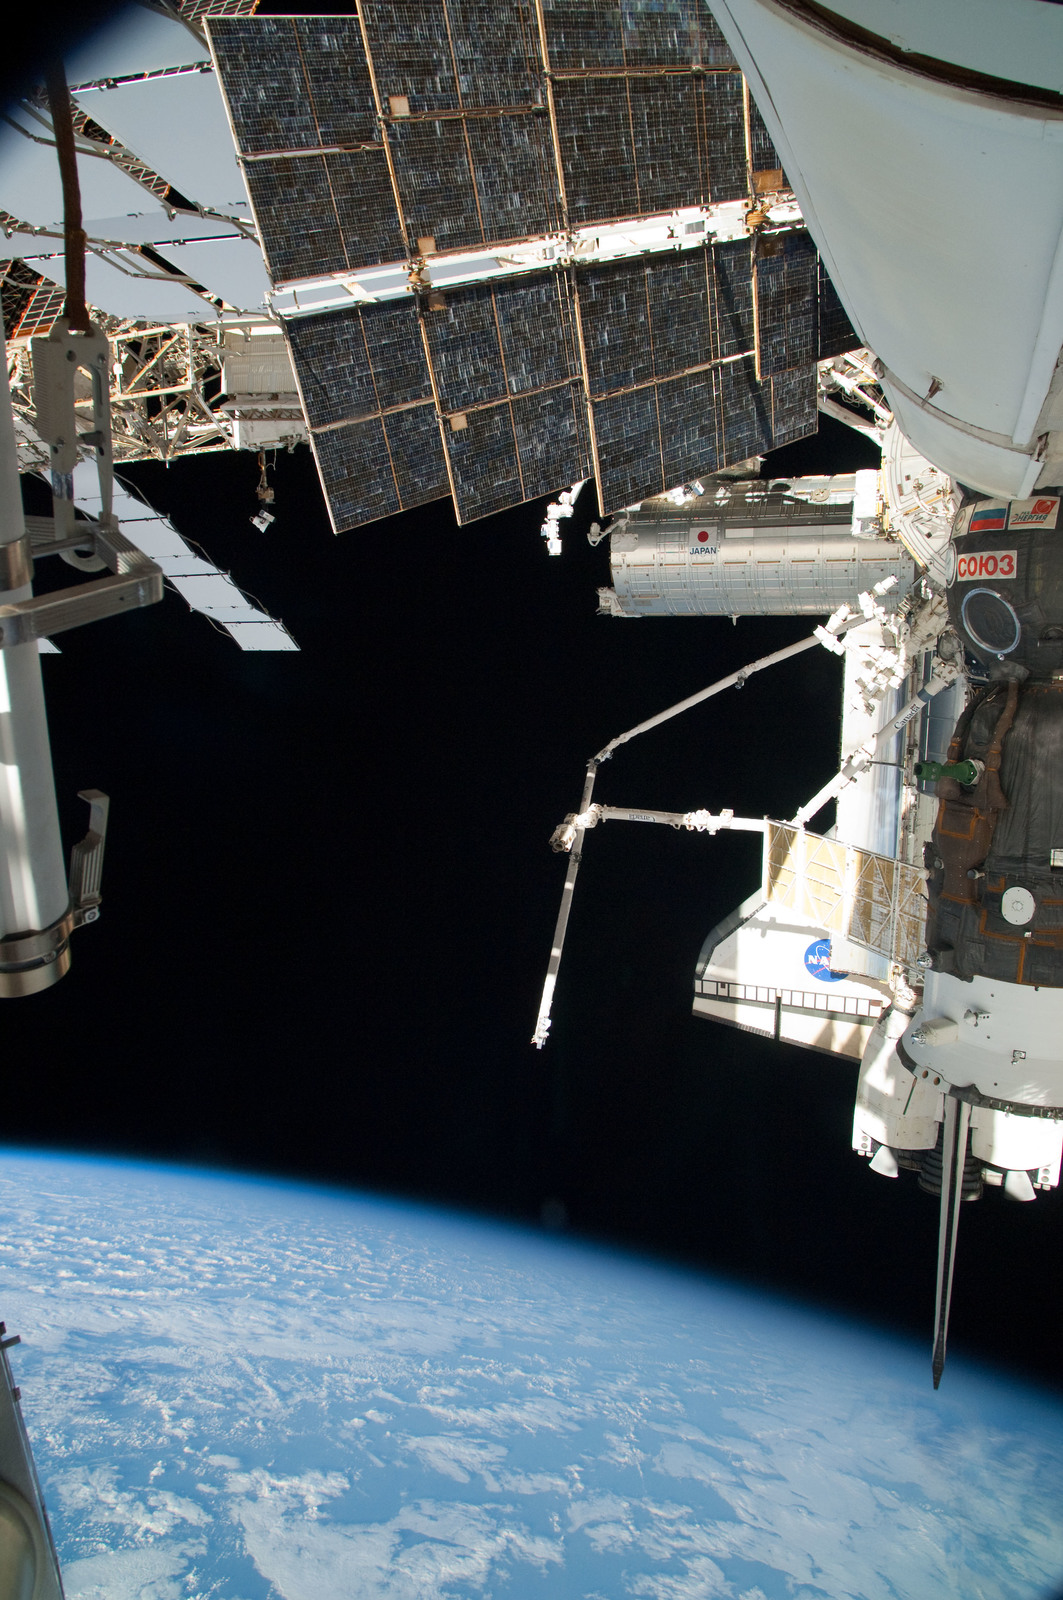 S126E025052 - STS-126 - View of ISS, Docked Soyuz and Endeavour